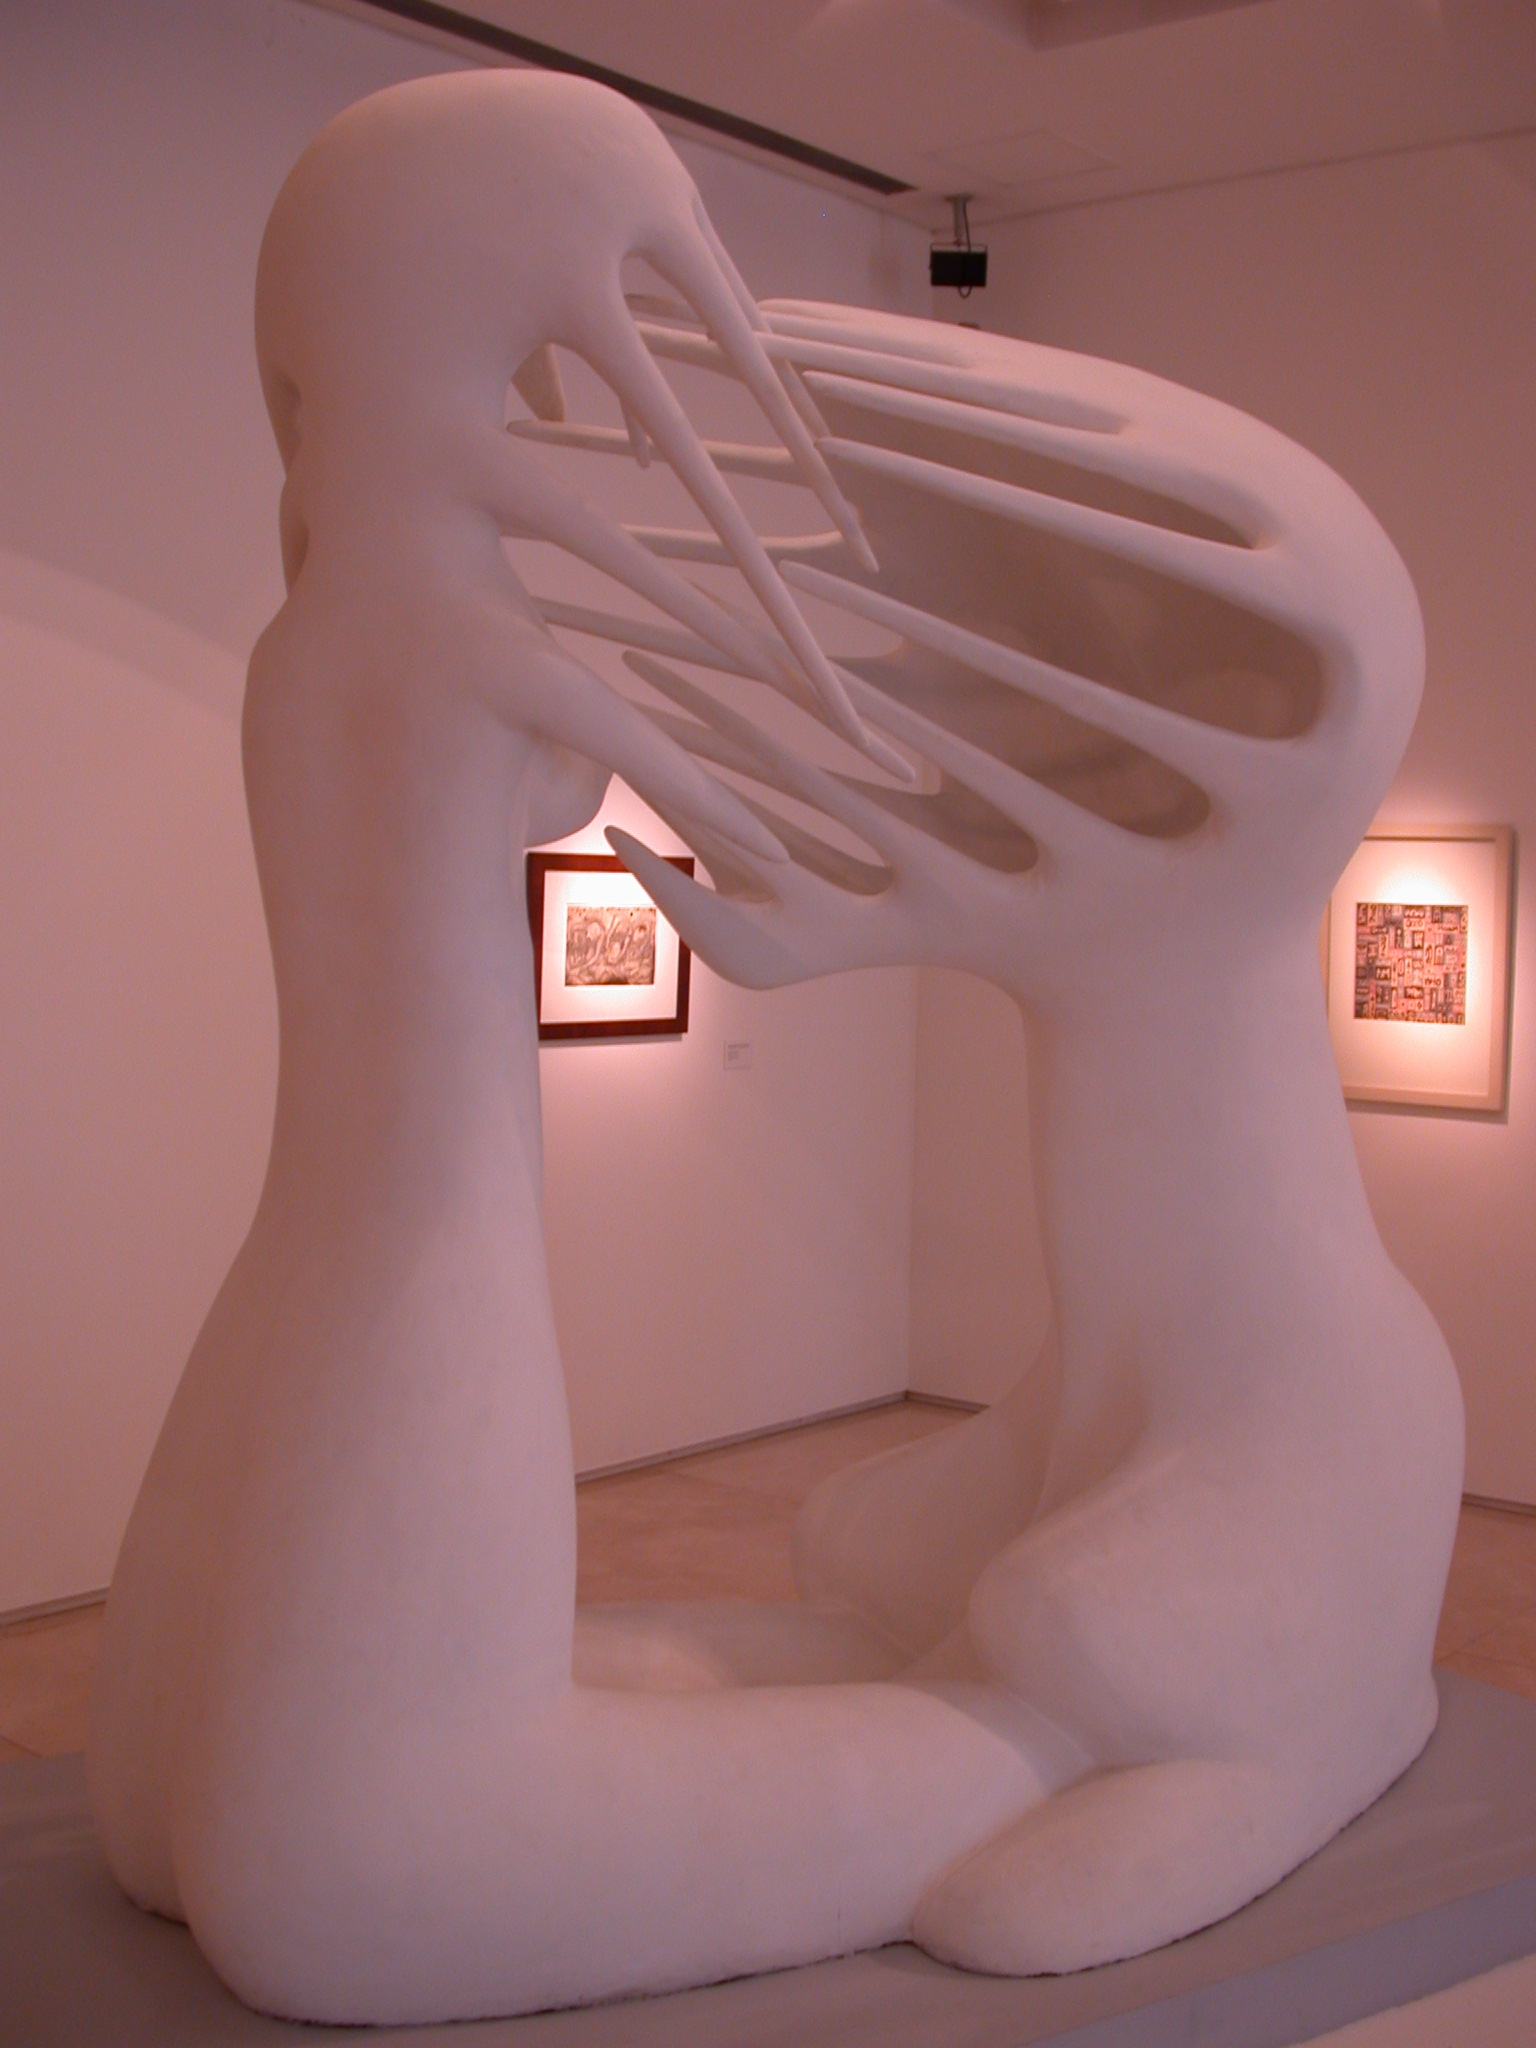 O Impossivel, The Impossible, Statue by Maria Martins in MALBA Museum, Buenos Aires, Argentina